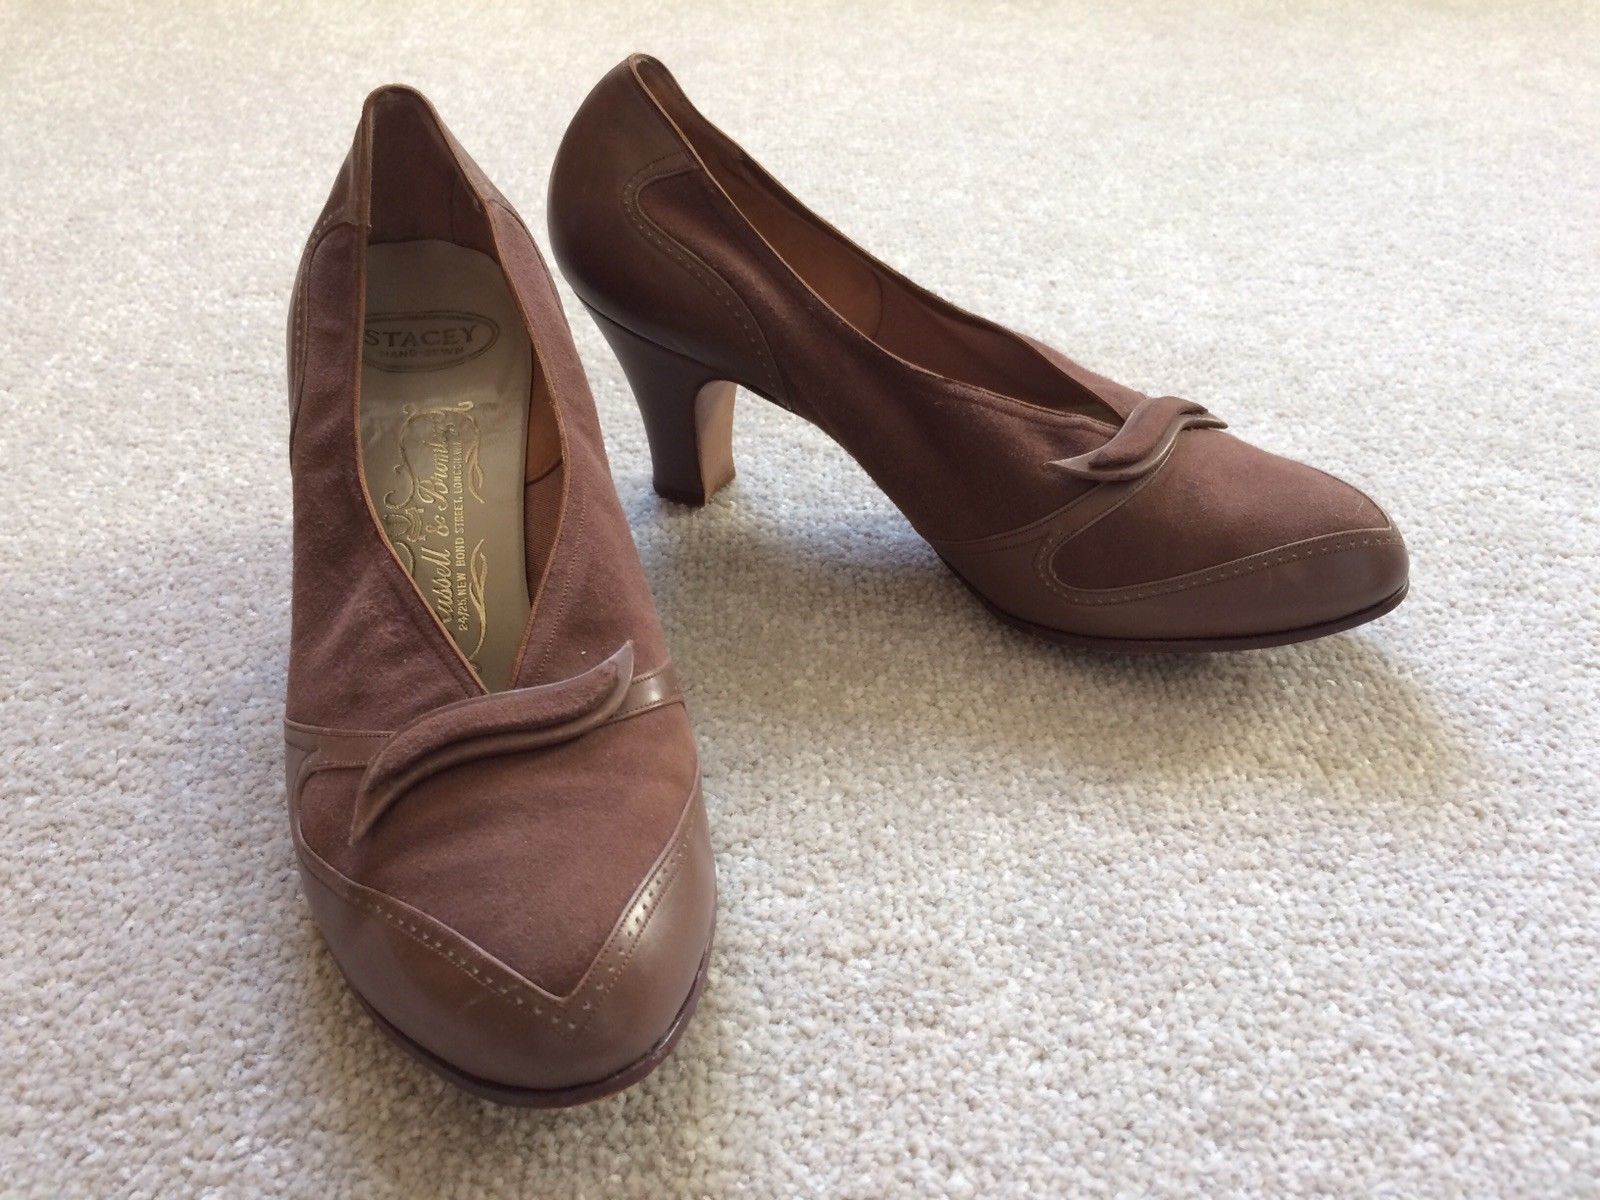 Lovely 1940s or early 50s shoes. Good quality. Marked as 5 but I'm a 4 so I'd say a 4 to small 5. Nice light brown, caramel colour. Russel and Bromley | eBay!